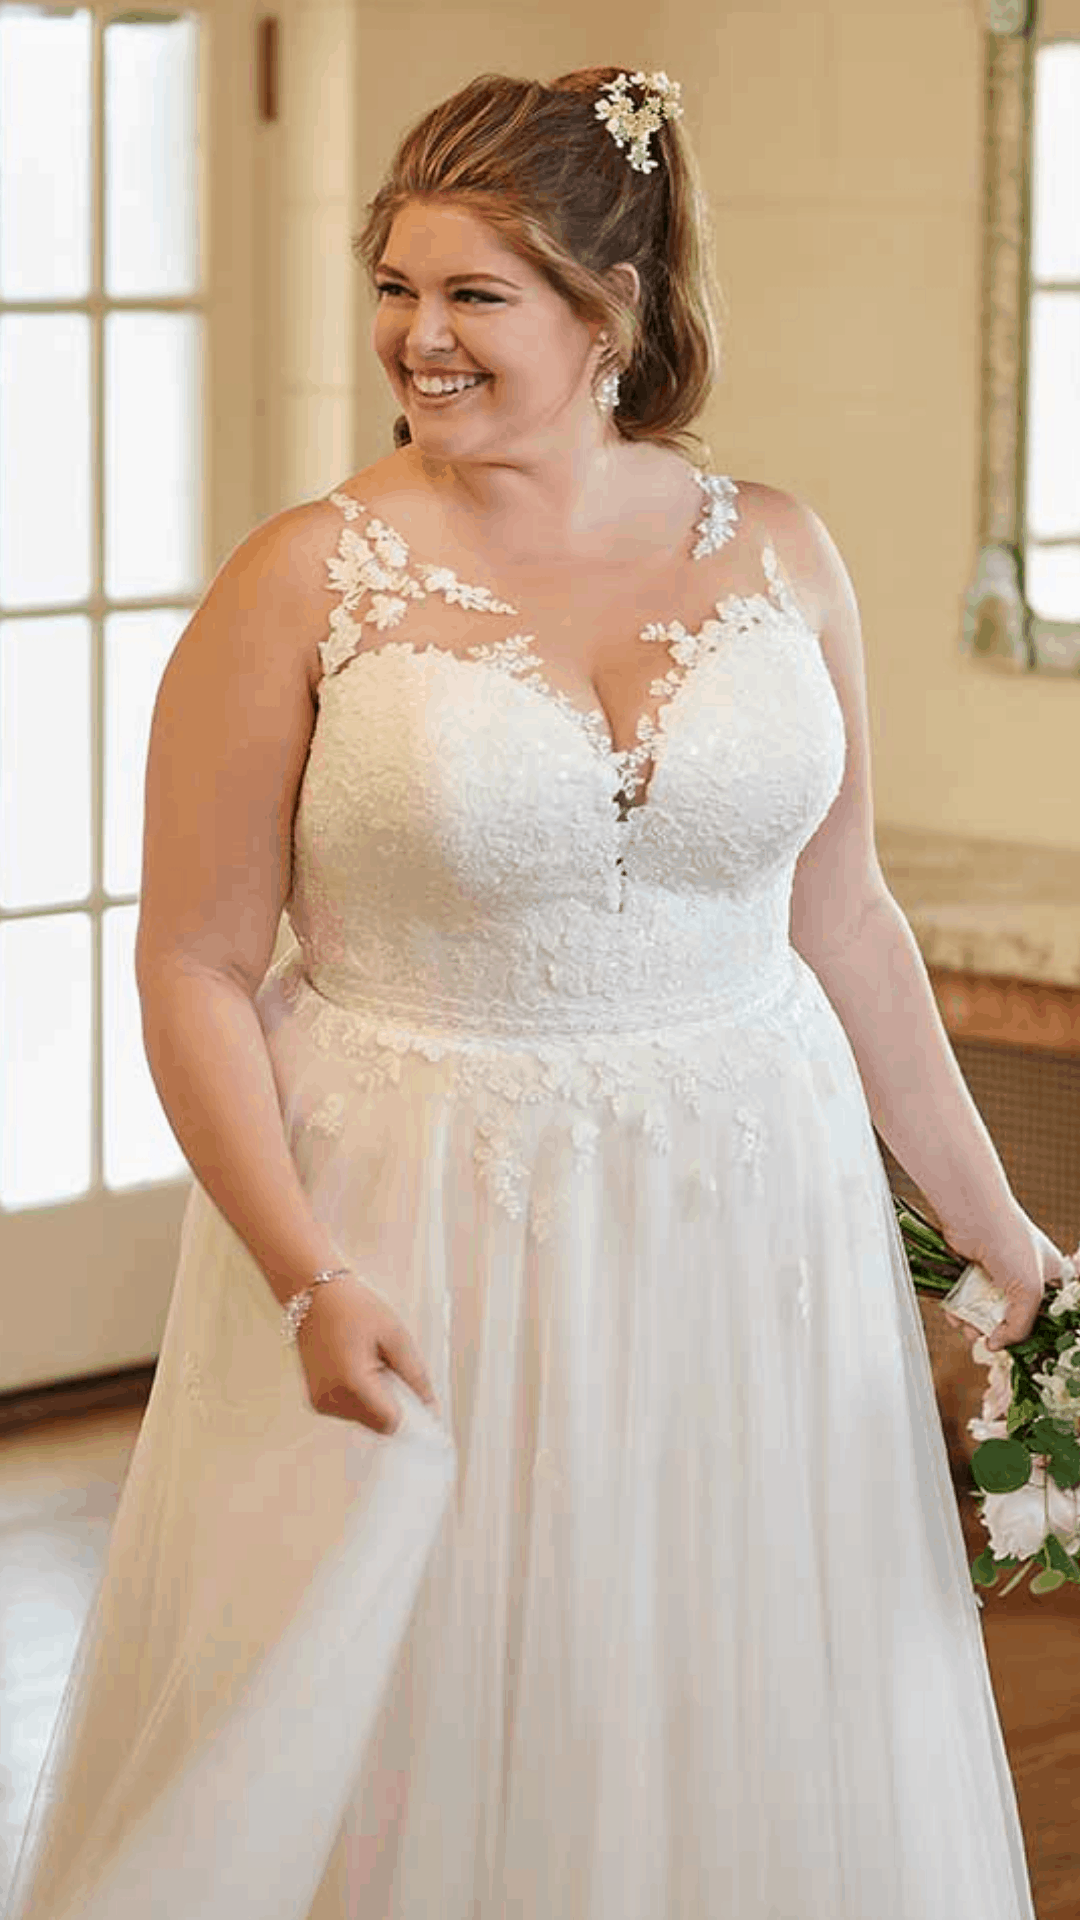 plus size every body every bride